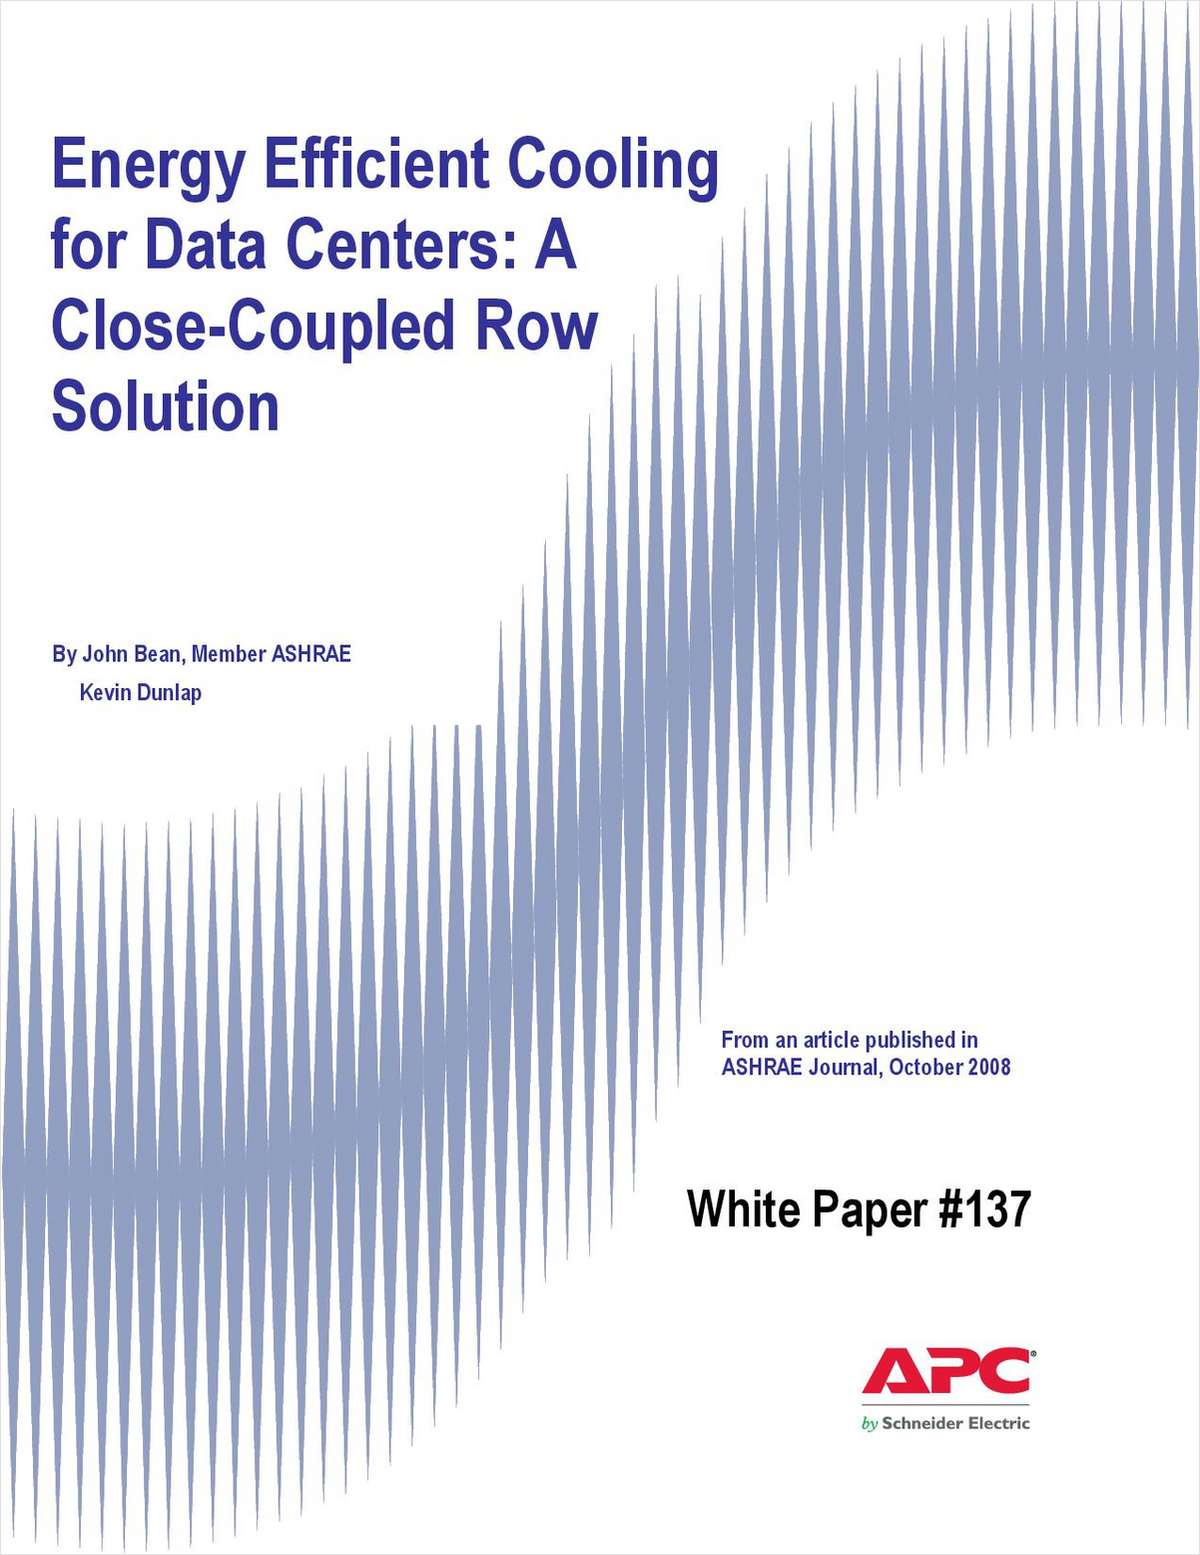 Energy Efficient Cooling for Data Centers: A Close-Coupled Row Solution